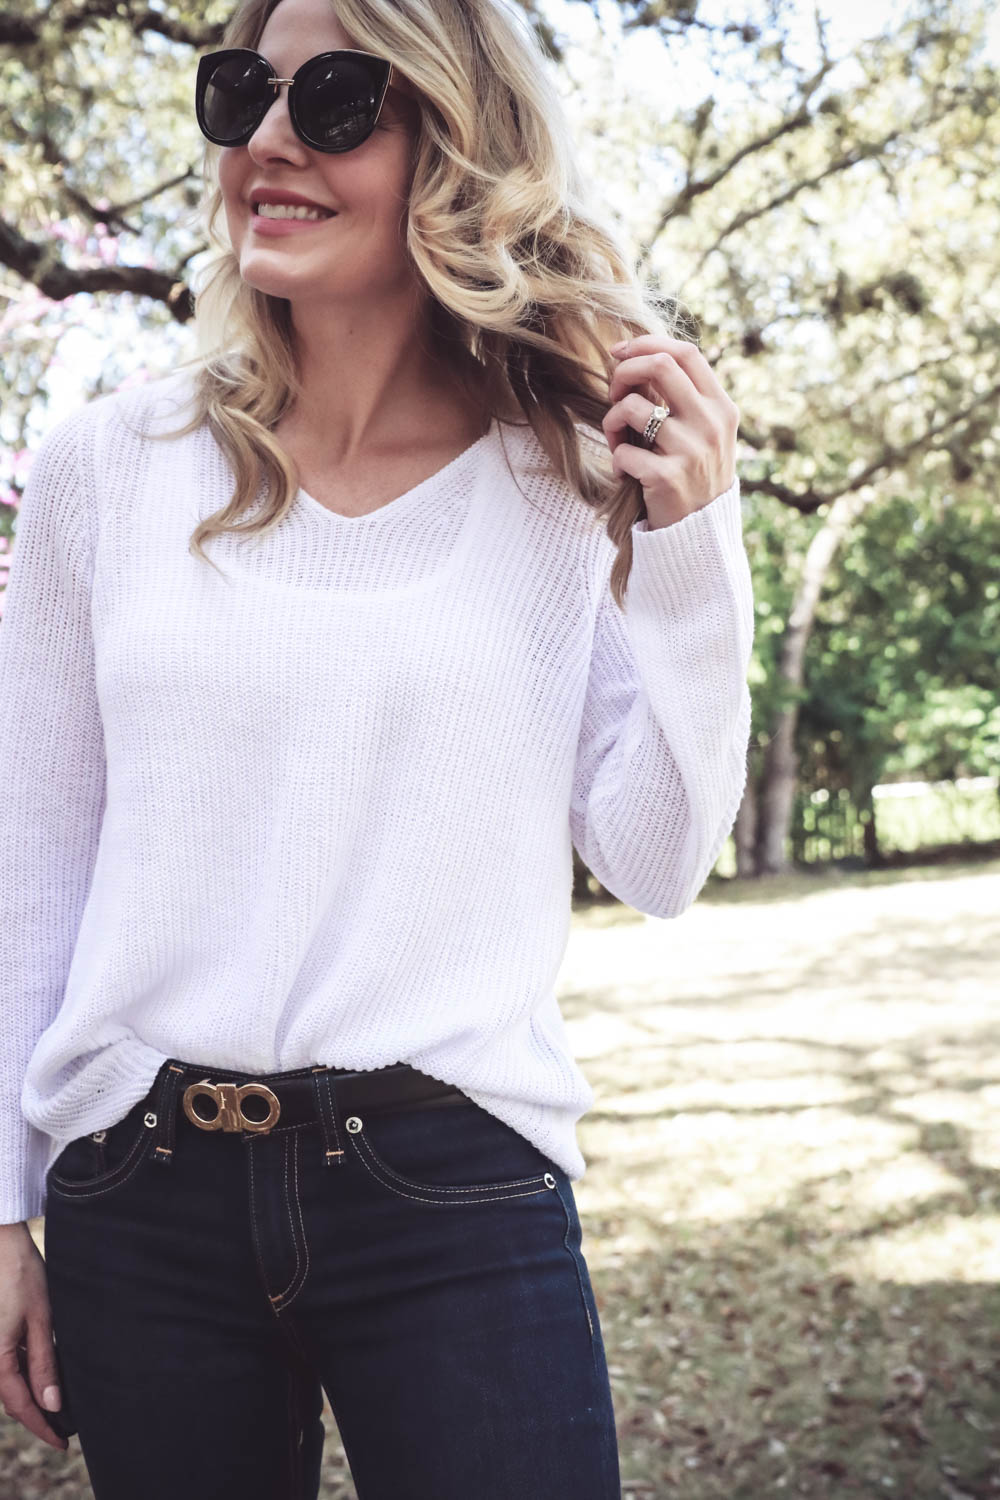 Spring wardrobe basics with erin busbee, fashion blogger and youtuber from san antonio, texas featuring a white cotton vneck sweater by Eileen Fisher